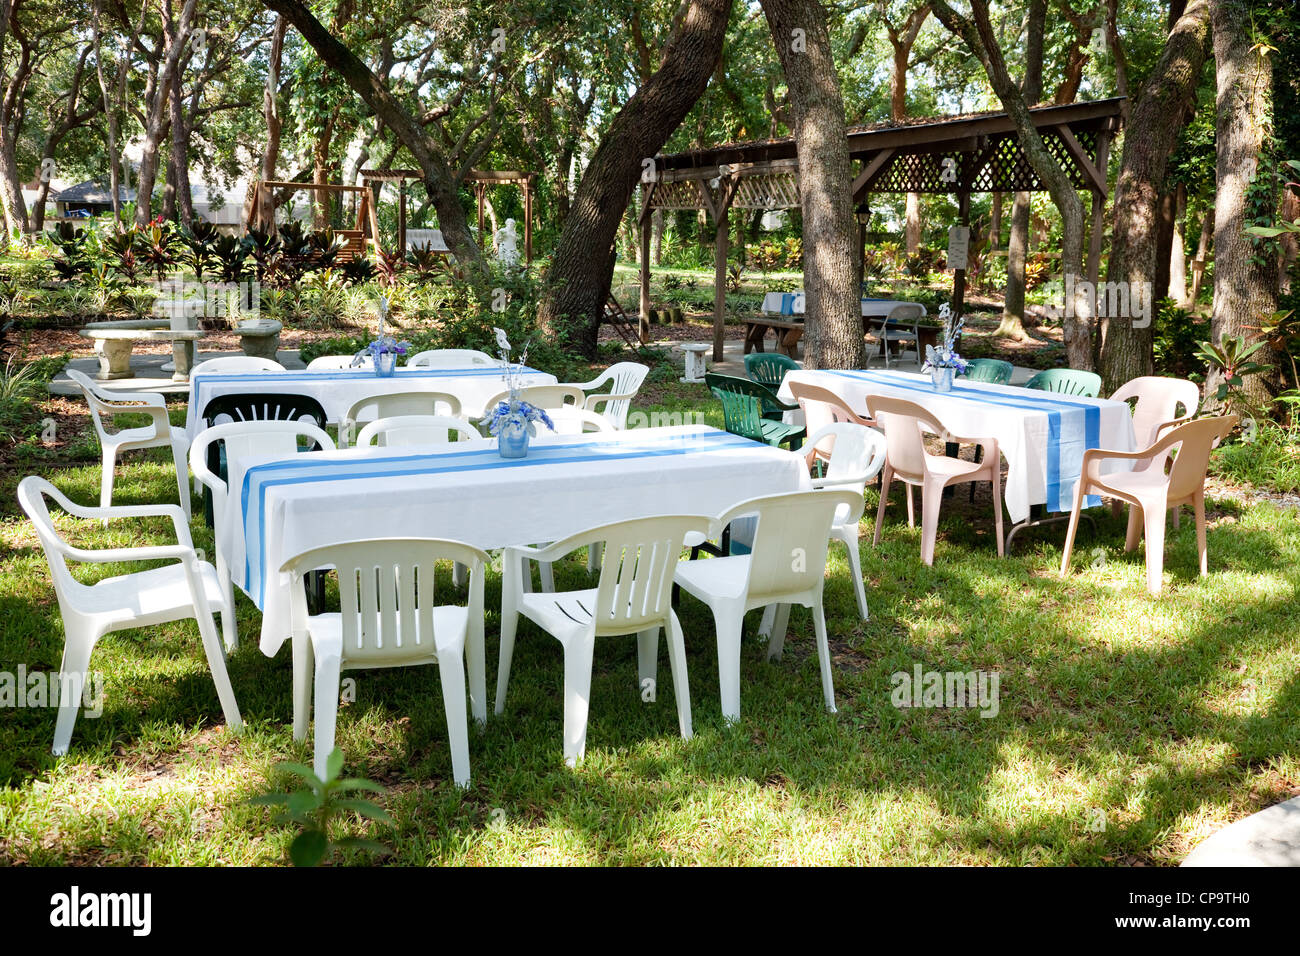 Tables and chairs set up for a garden party, wedding, or other